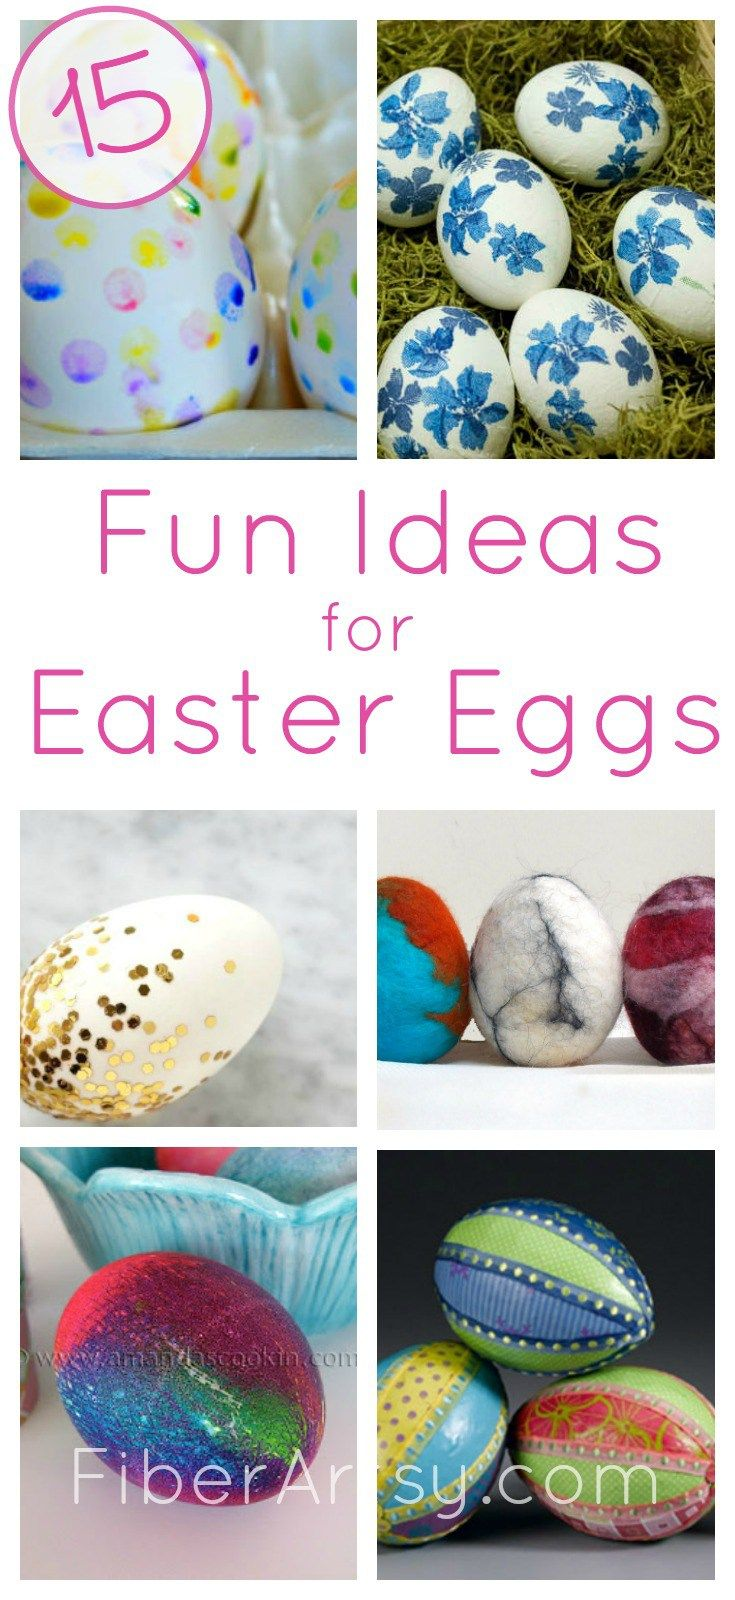 Decorating Easter Eggs the fun way. Here are 15 creative ideas for coloring and dyeing your Easter Eggs. You can print, decoupage and marble them.